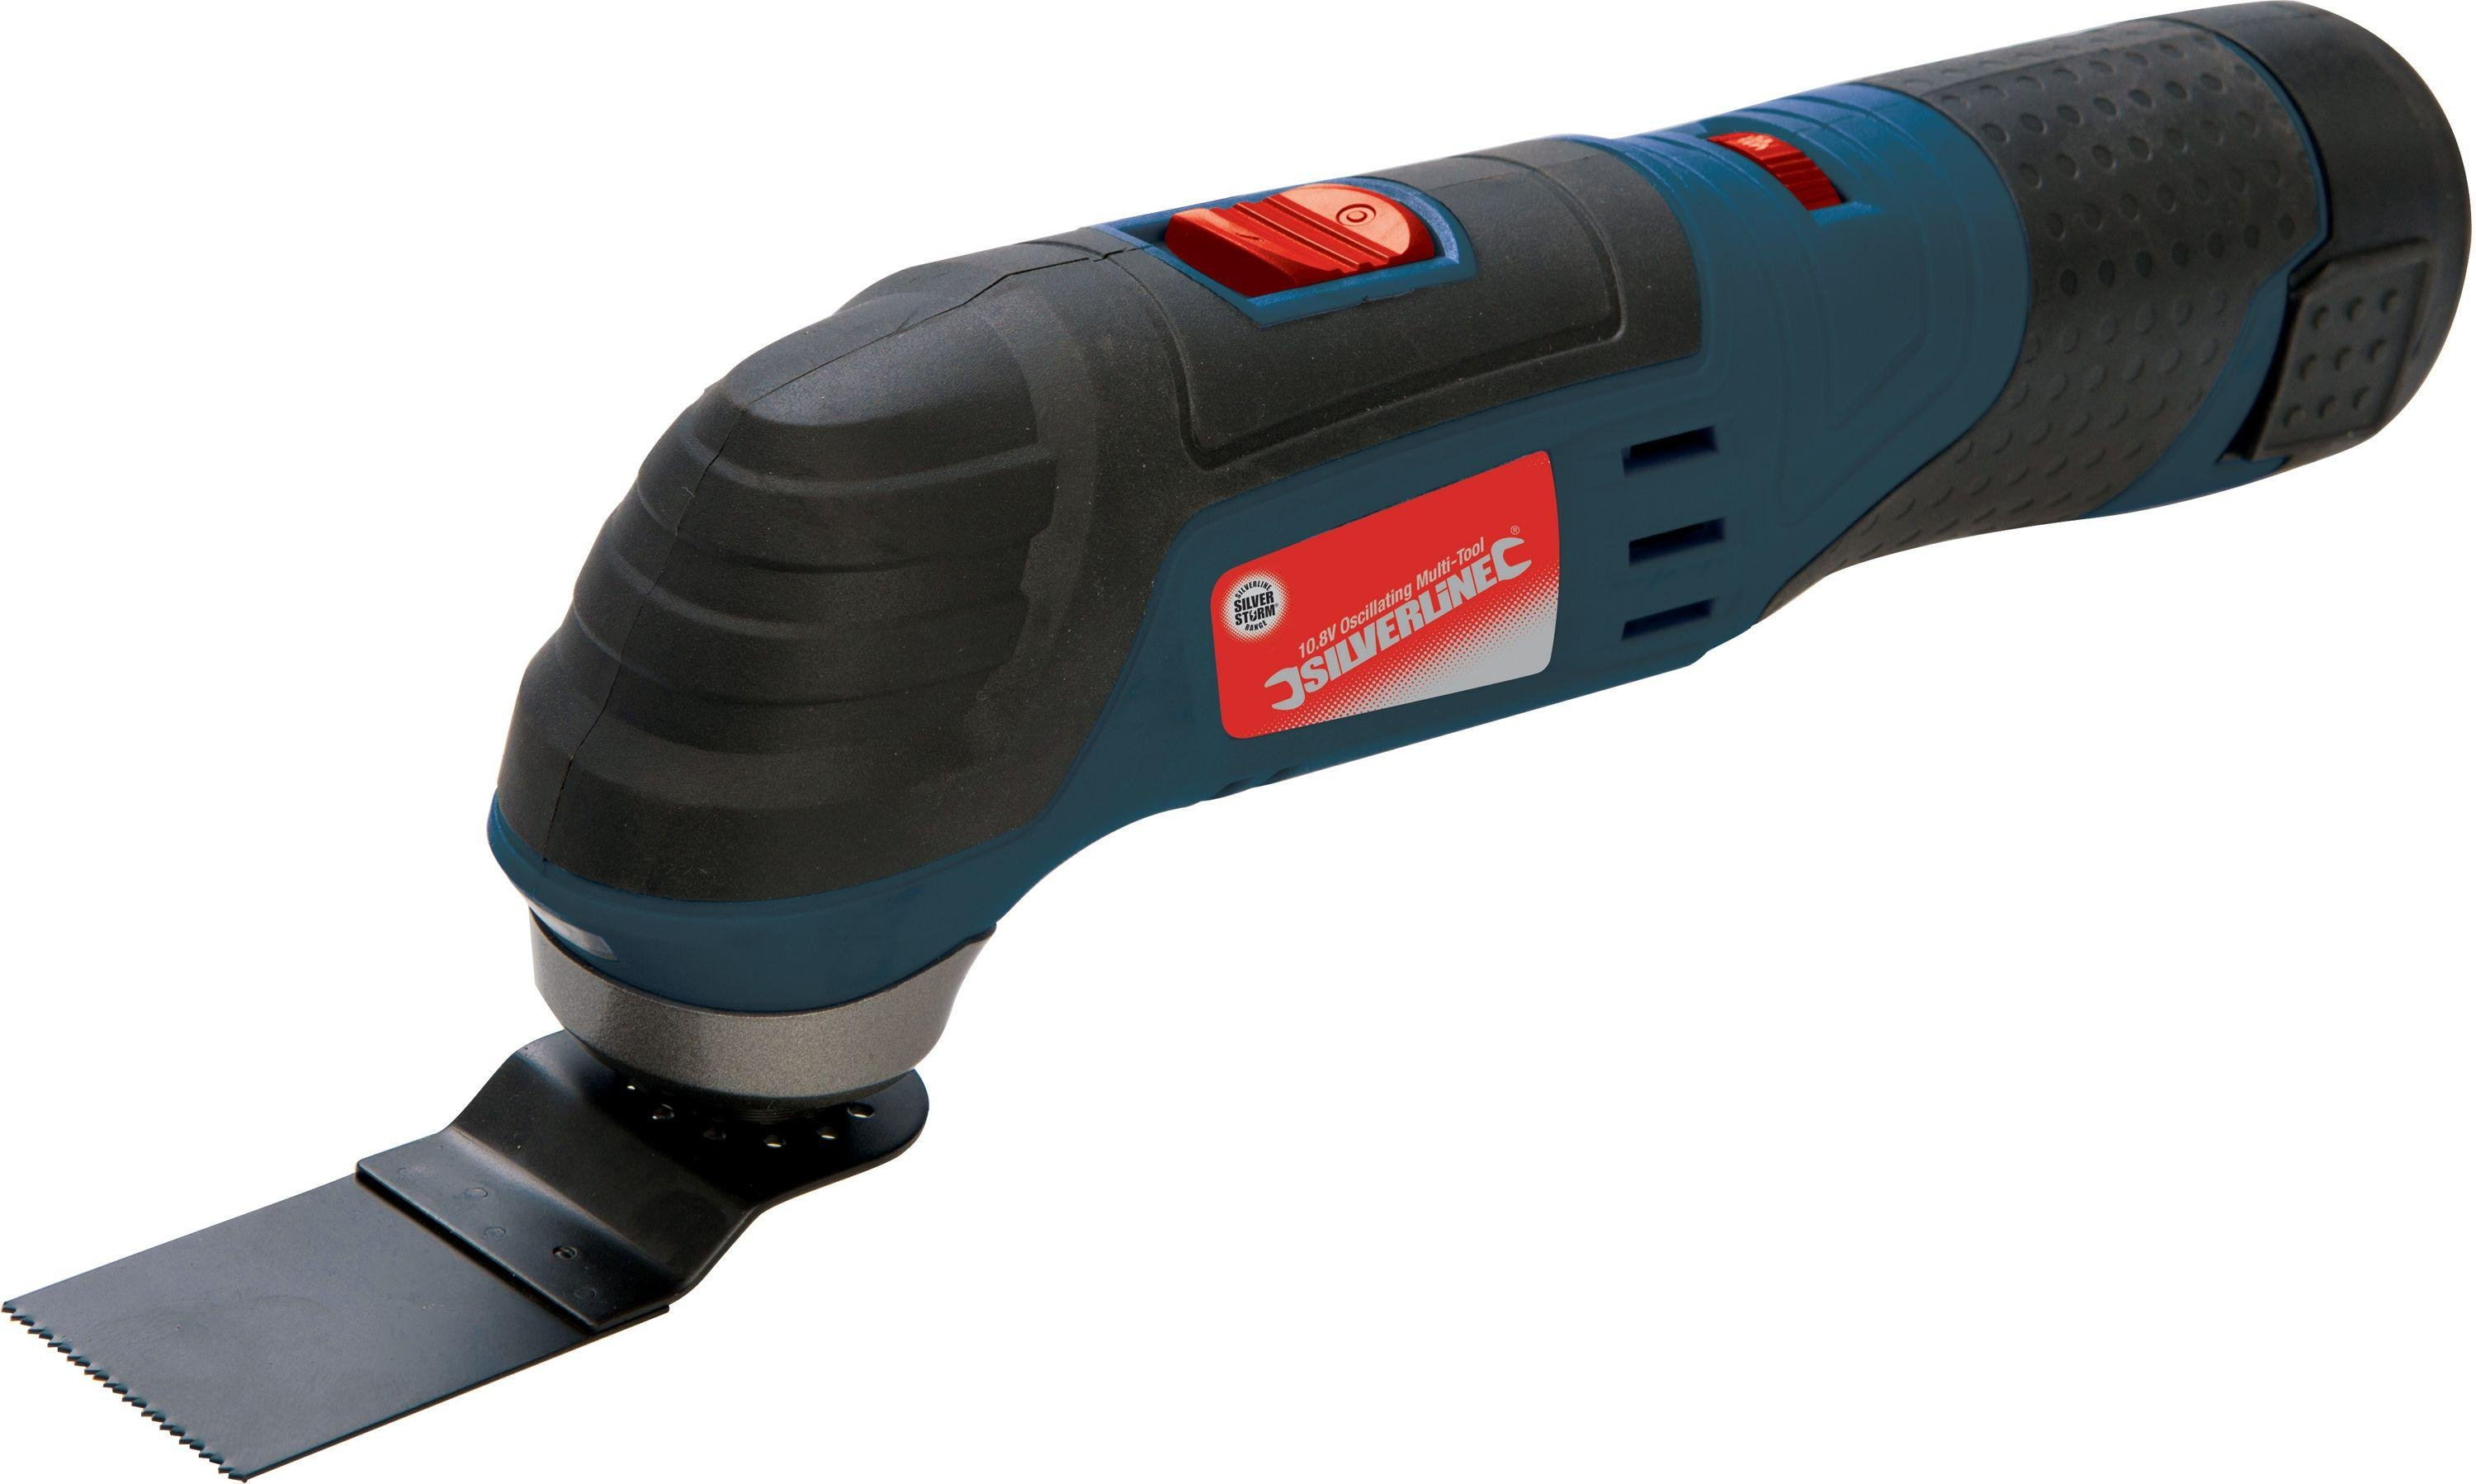 Silverstorm - 108V Oscillating Multi Tool lowest price